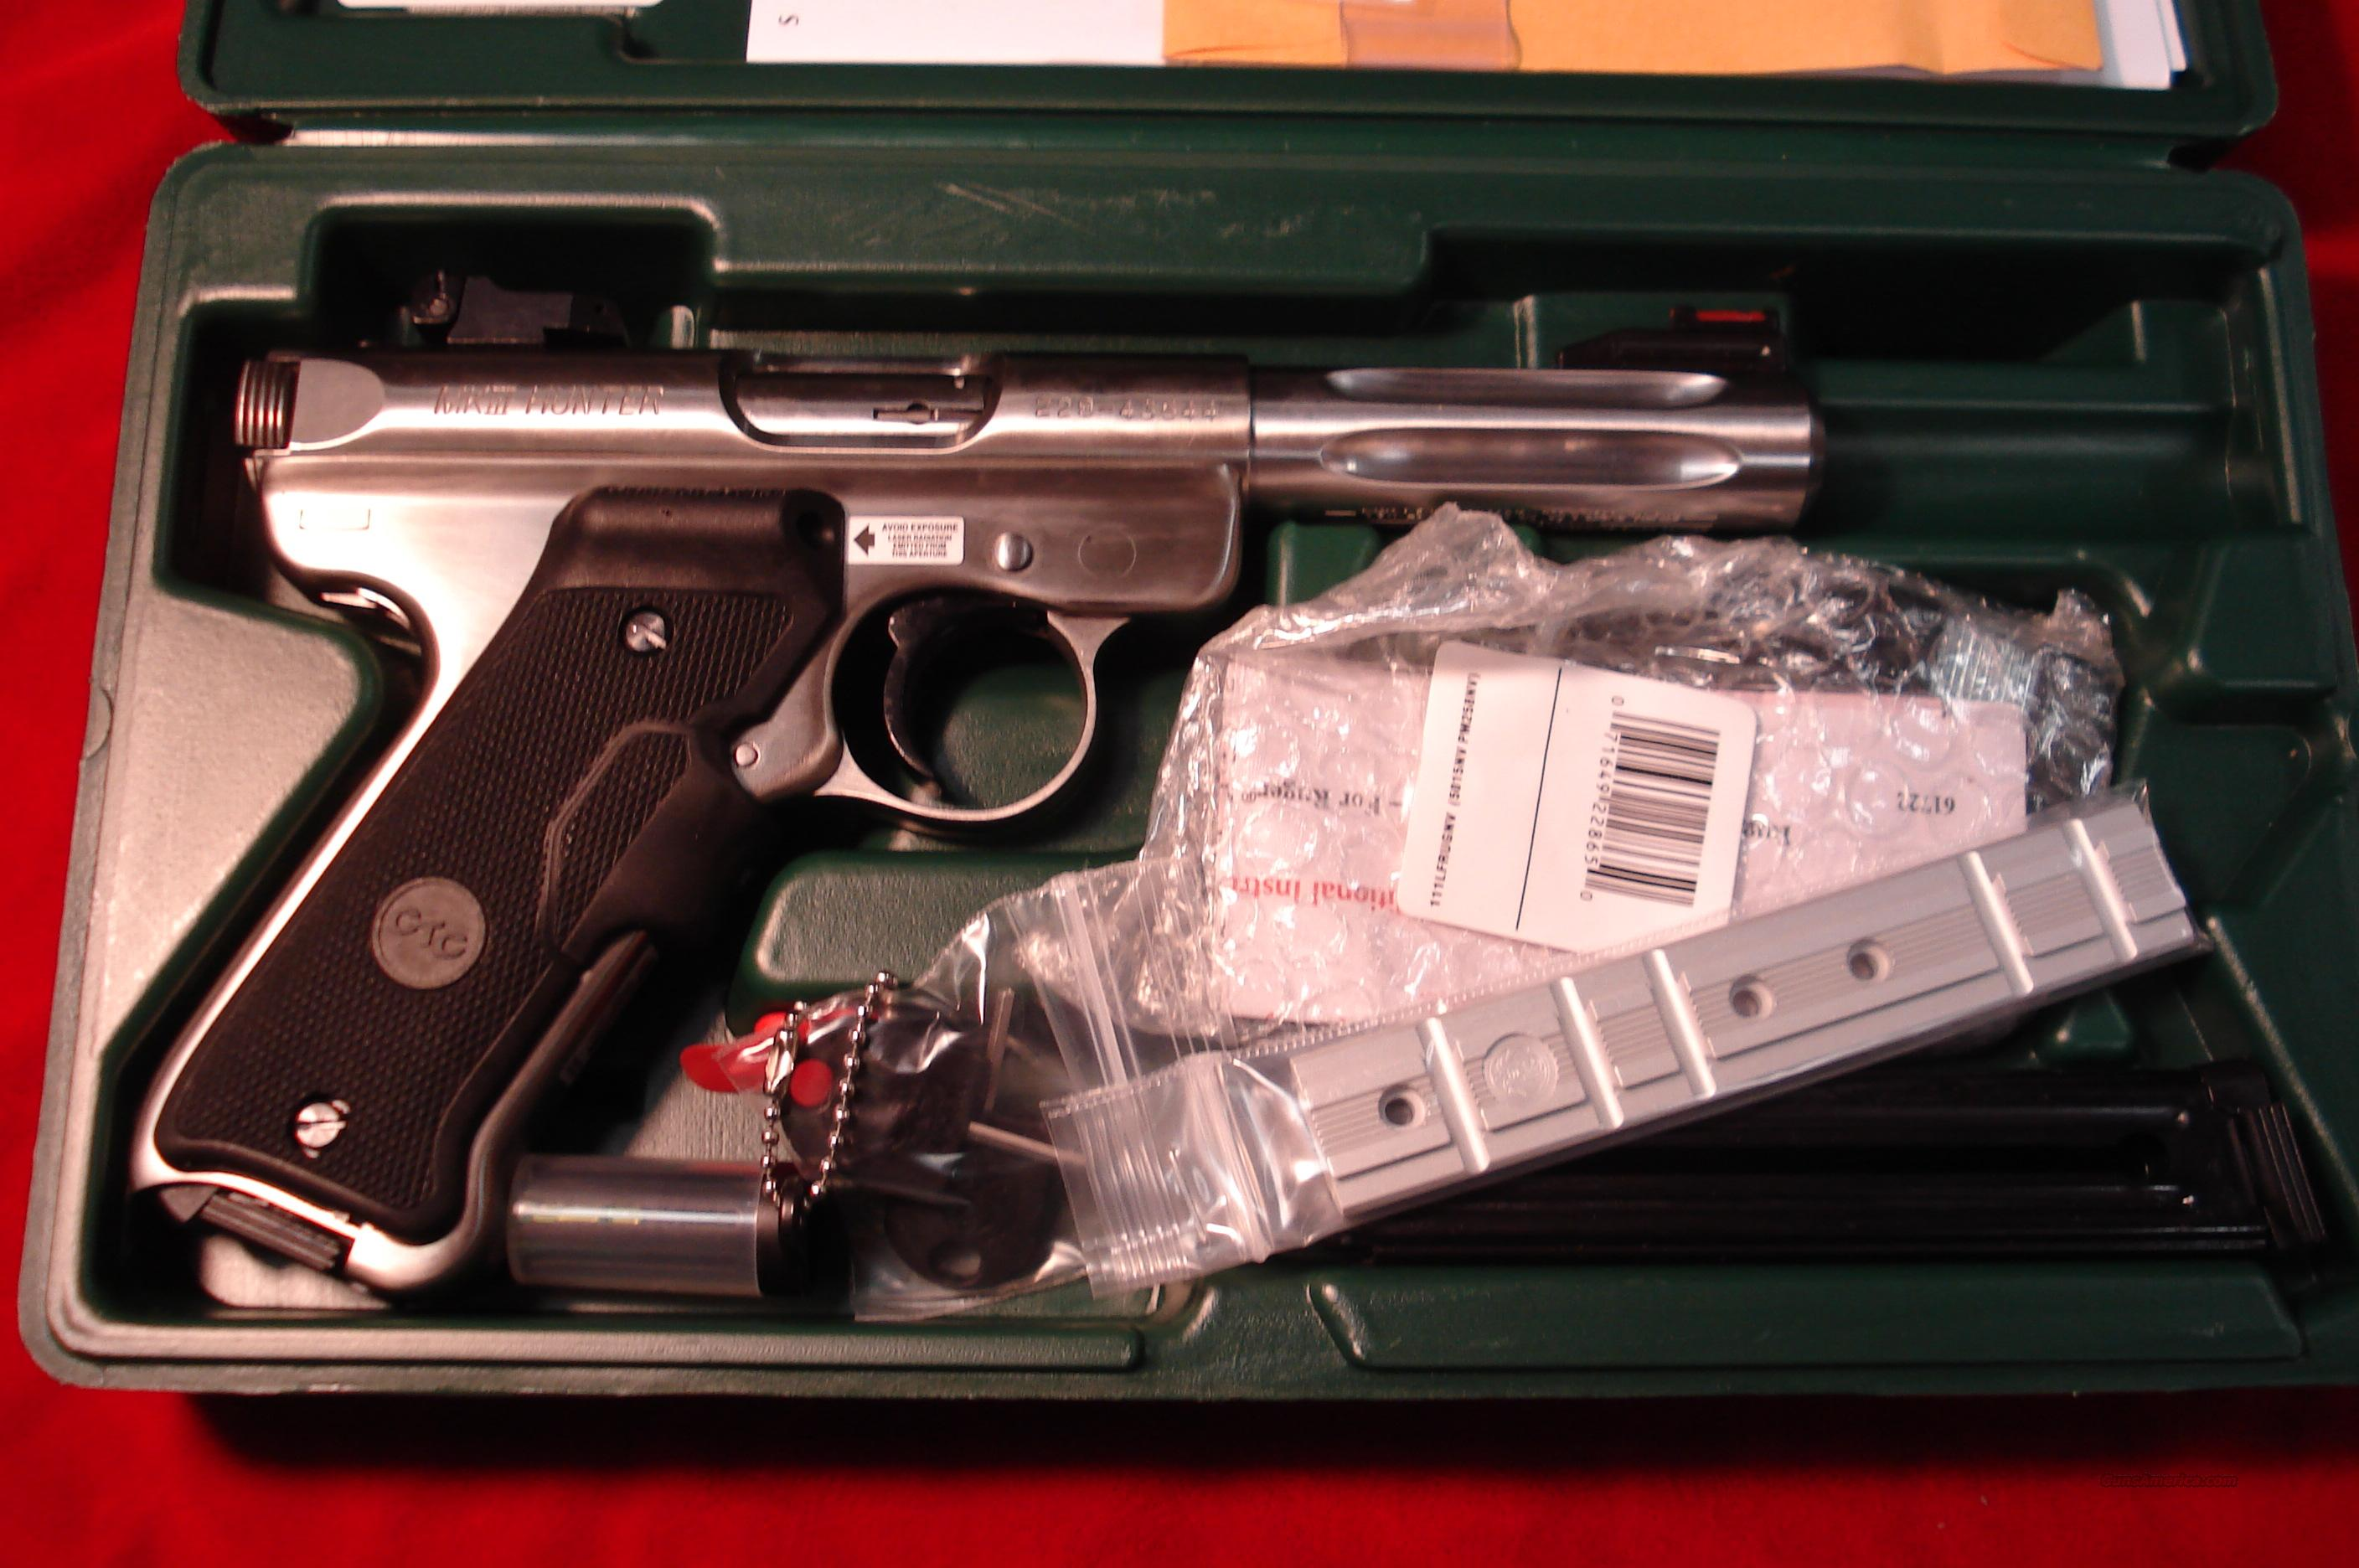 "RUGER MKIII  HUNTER 4.5"" STAINLESS W/CRIMSON TRACE GRIPS NEW  Guns > Pistols > Ruger Semi-Auto Pistols > Mark I & II Family"